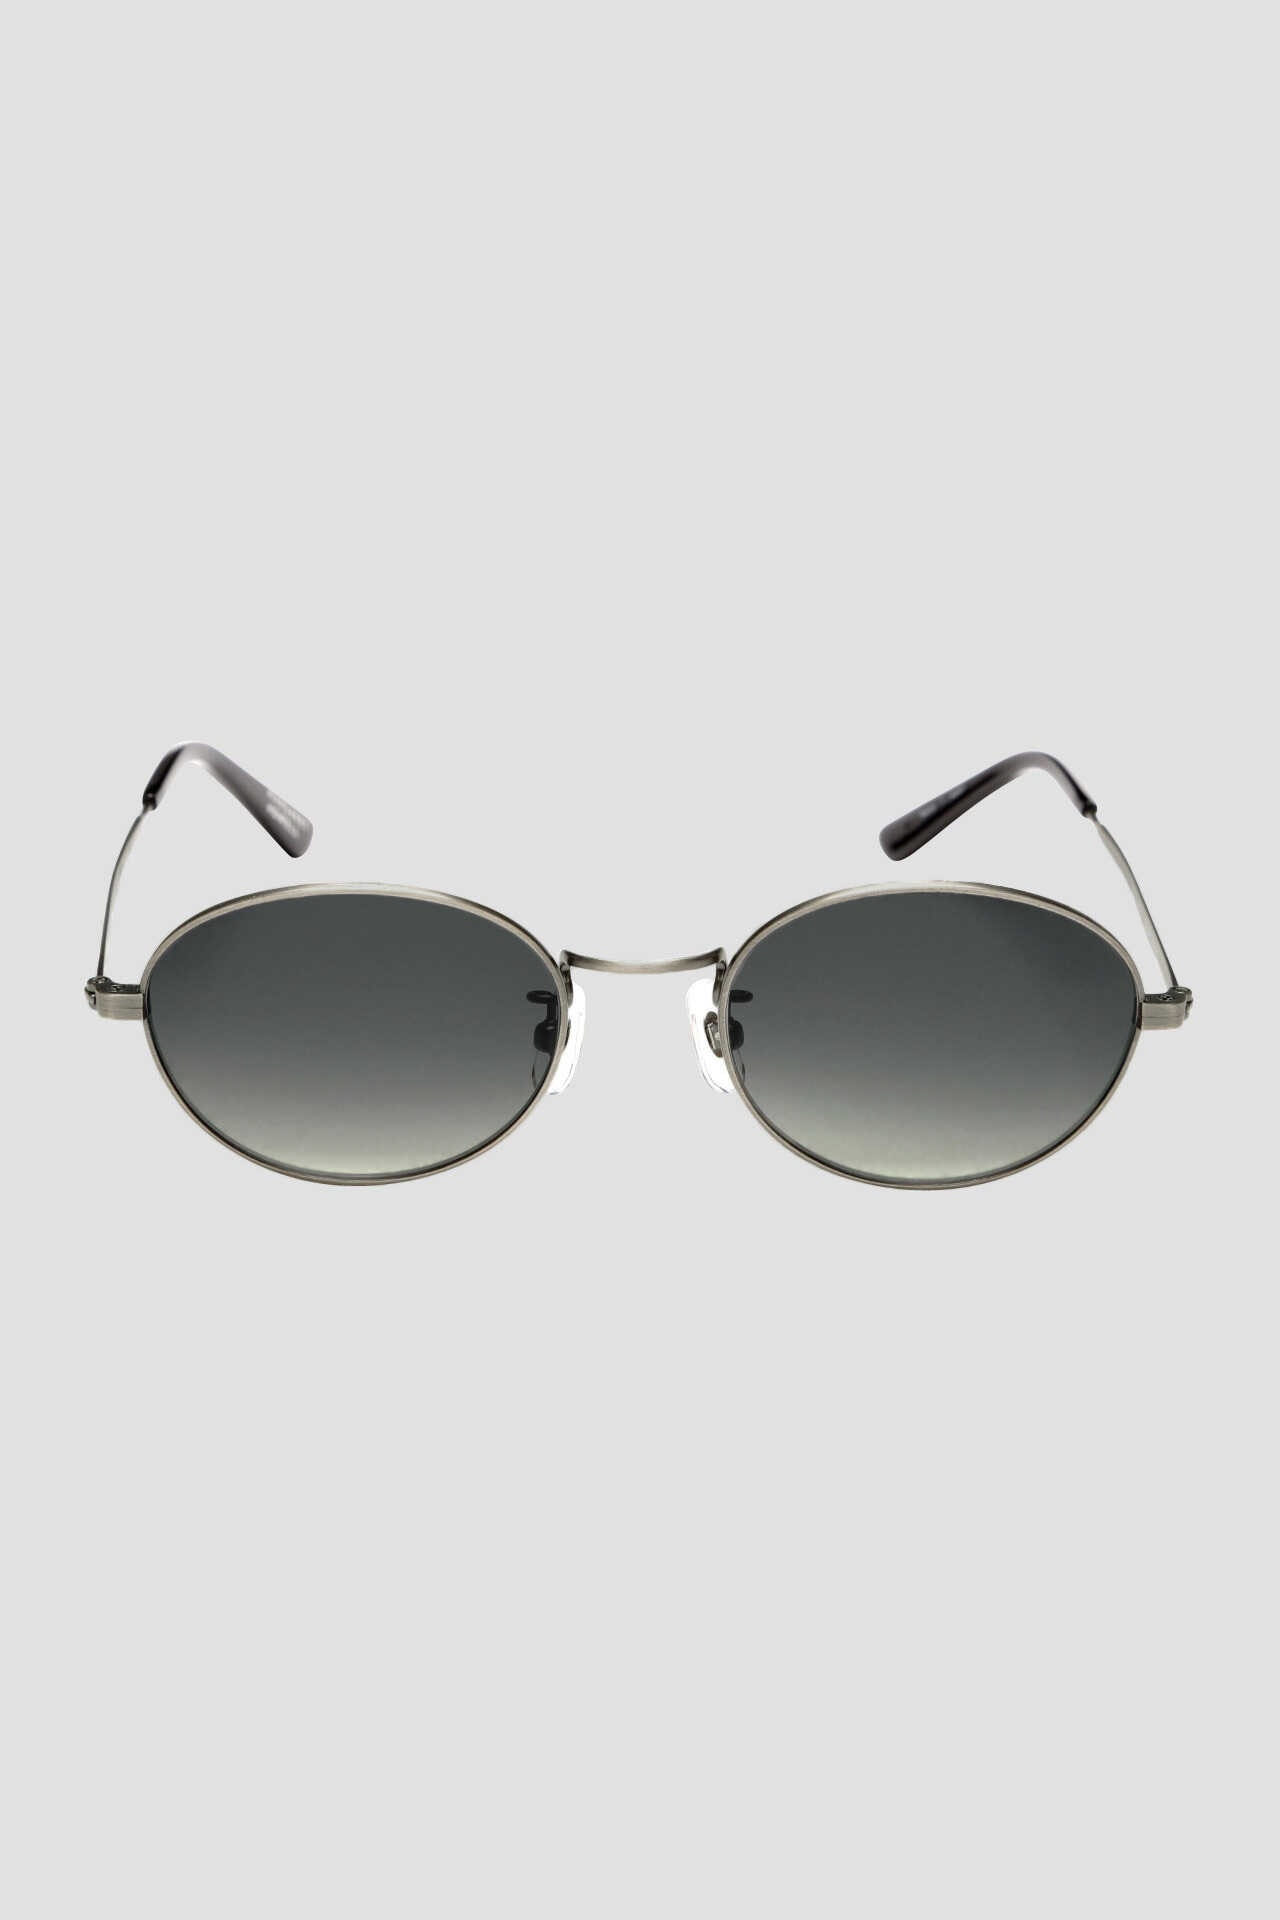 METAL FRAME SUNGLASSES6